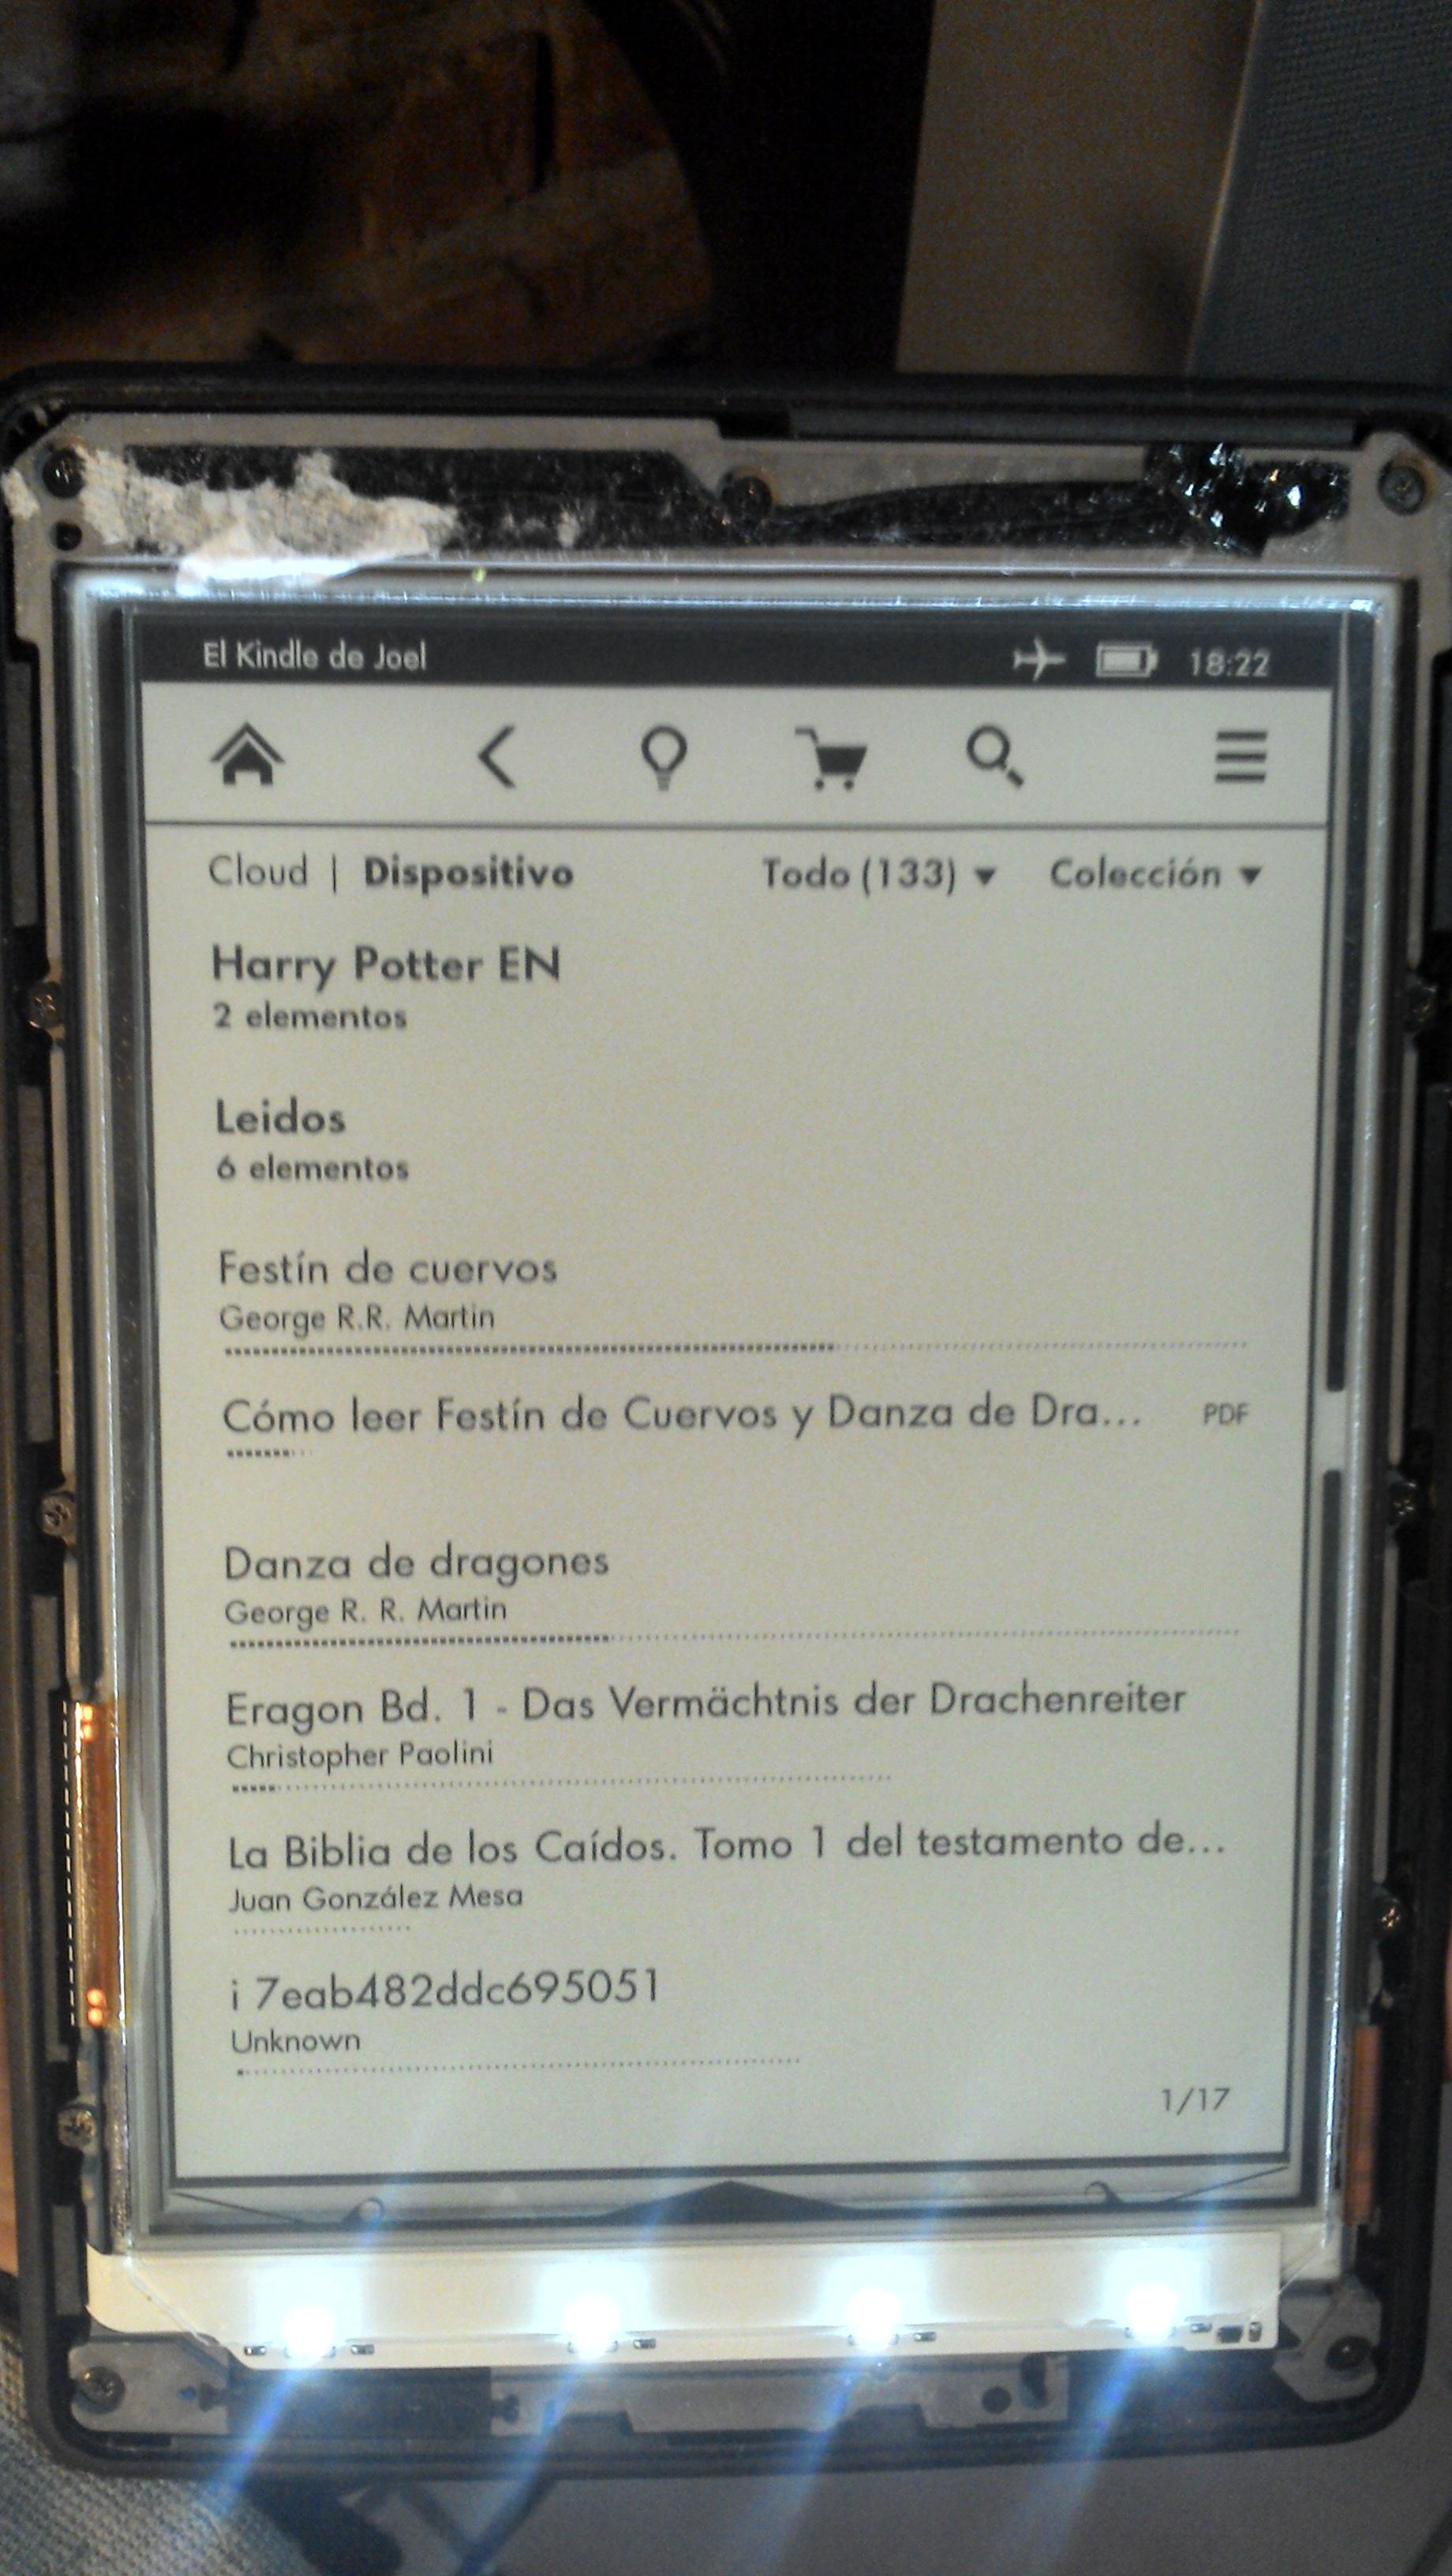 Kindle Paperwhite unresponsive touchscreen - MobileRead Forums